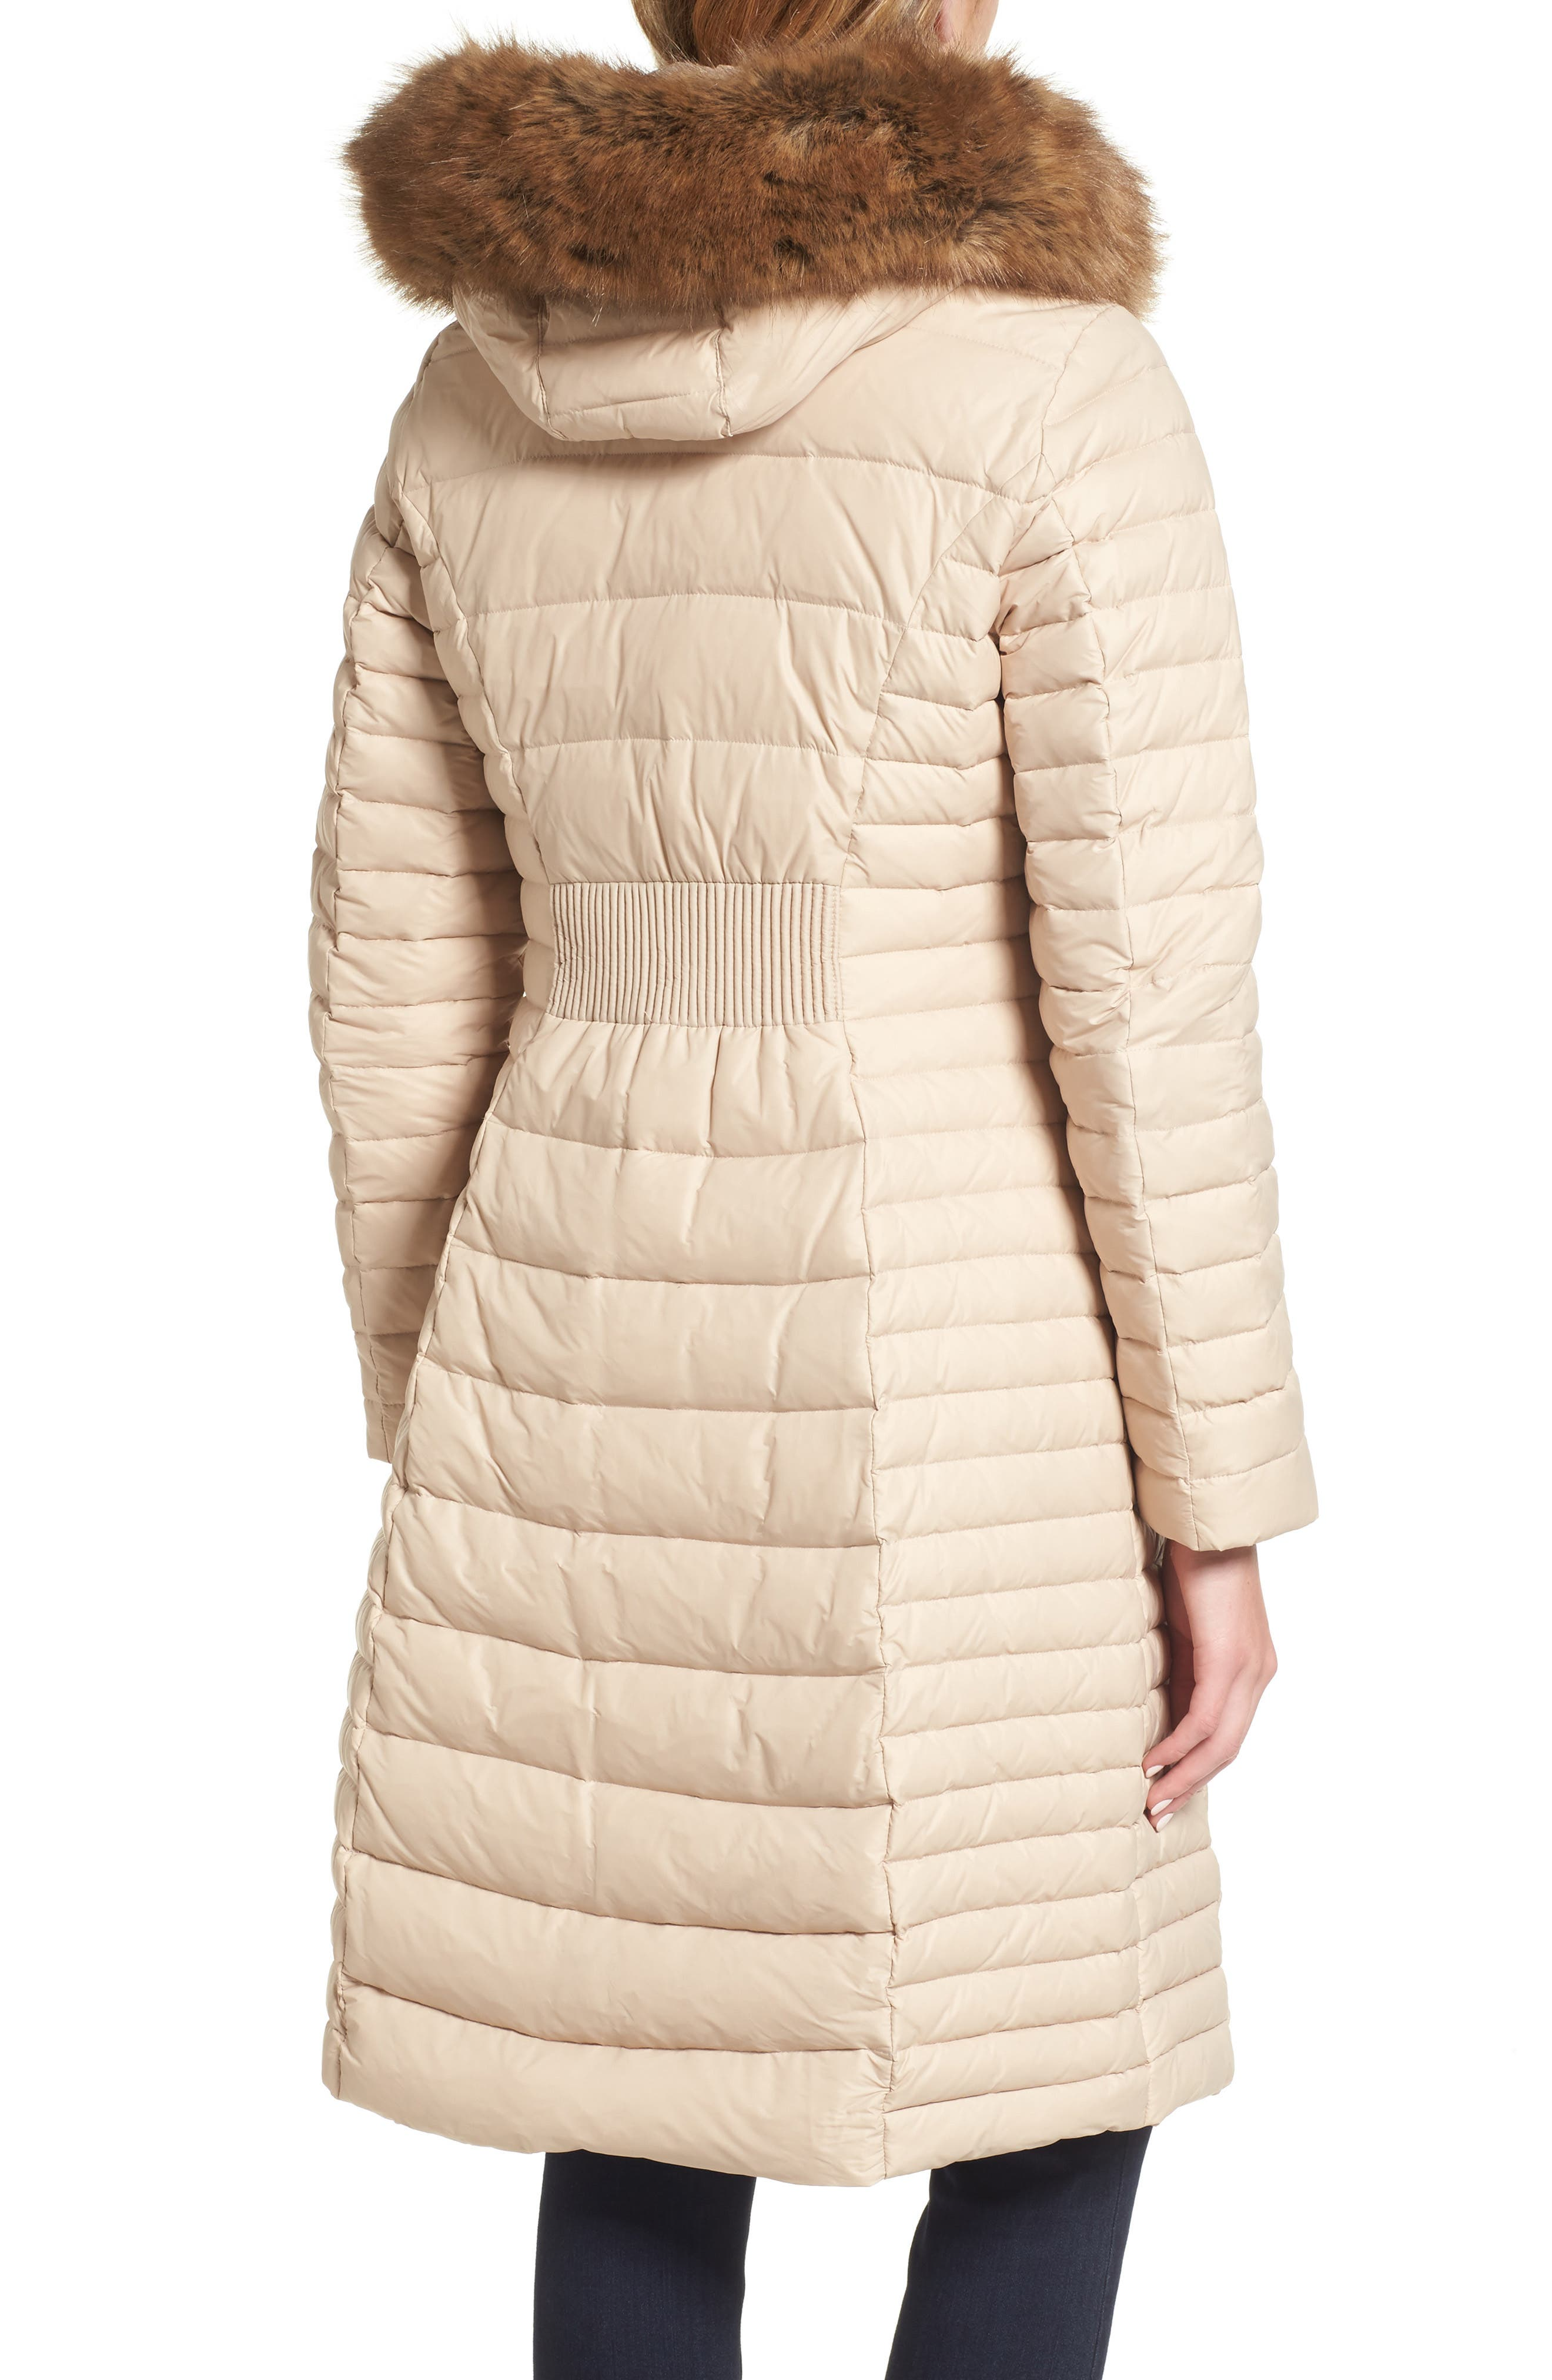 down puffer coat with faux fur trim,                             Alternate thumbnail 2, color,                             Deco Beige